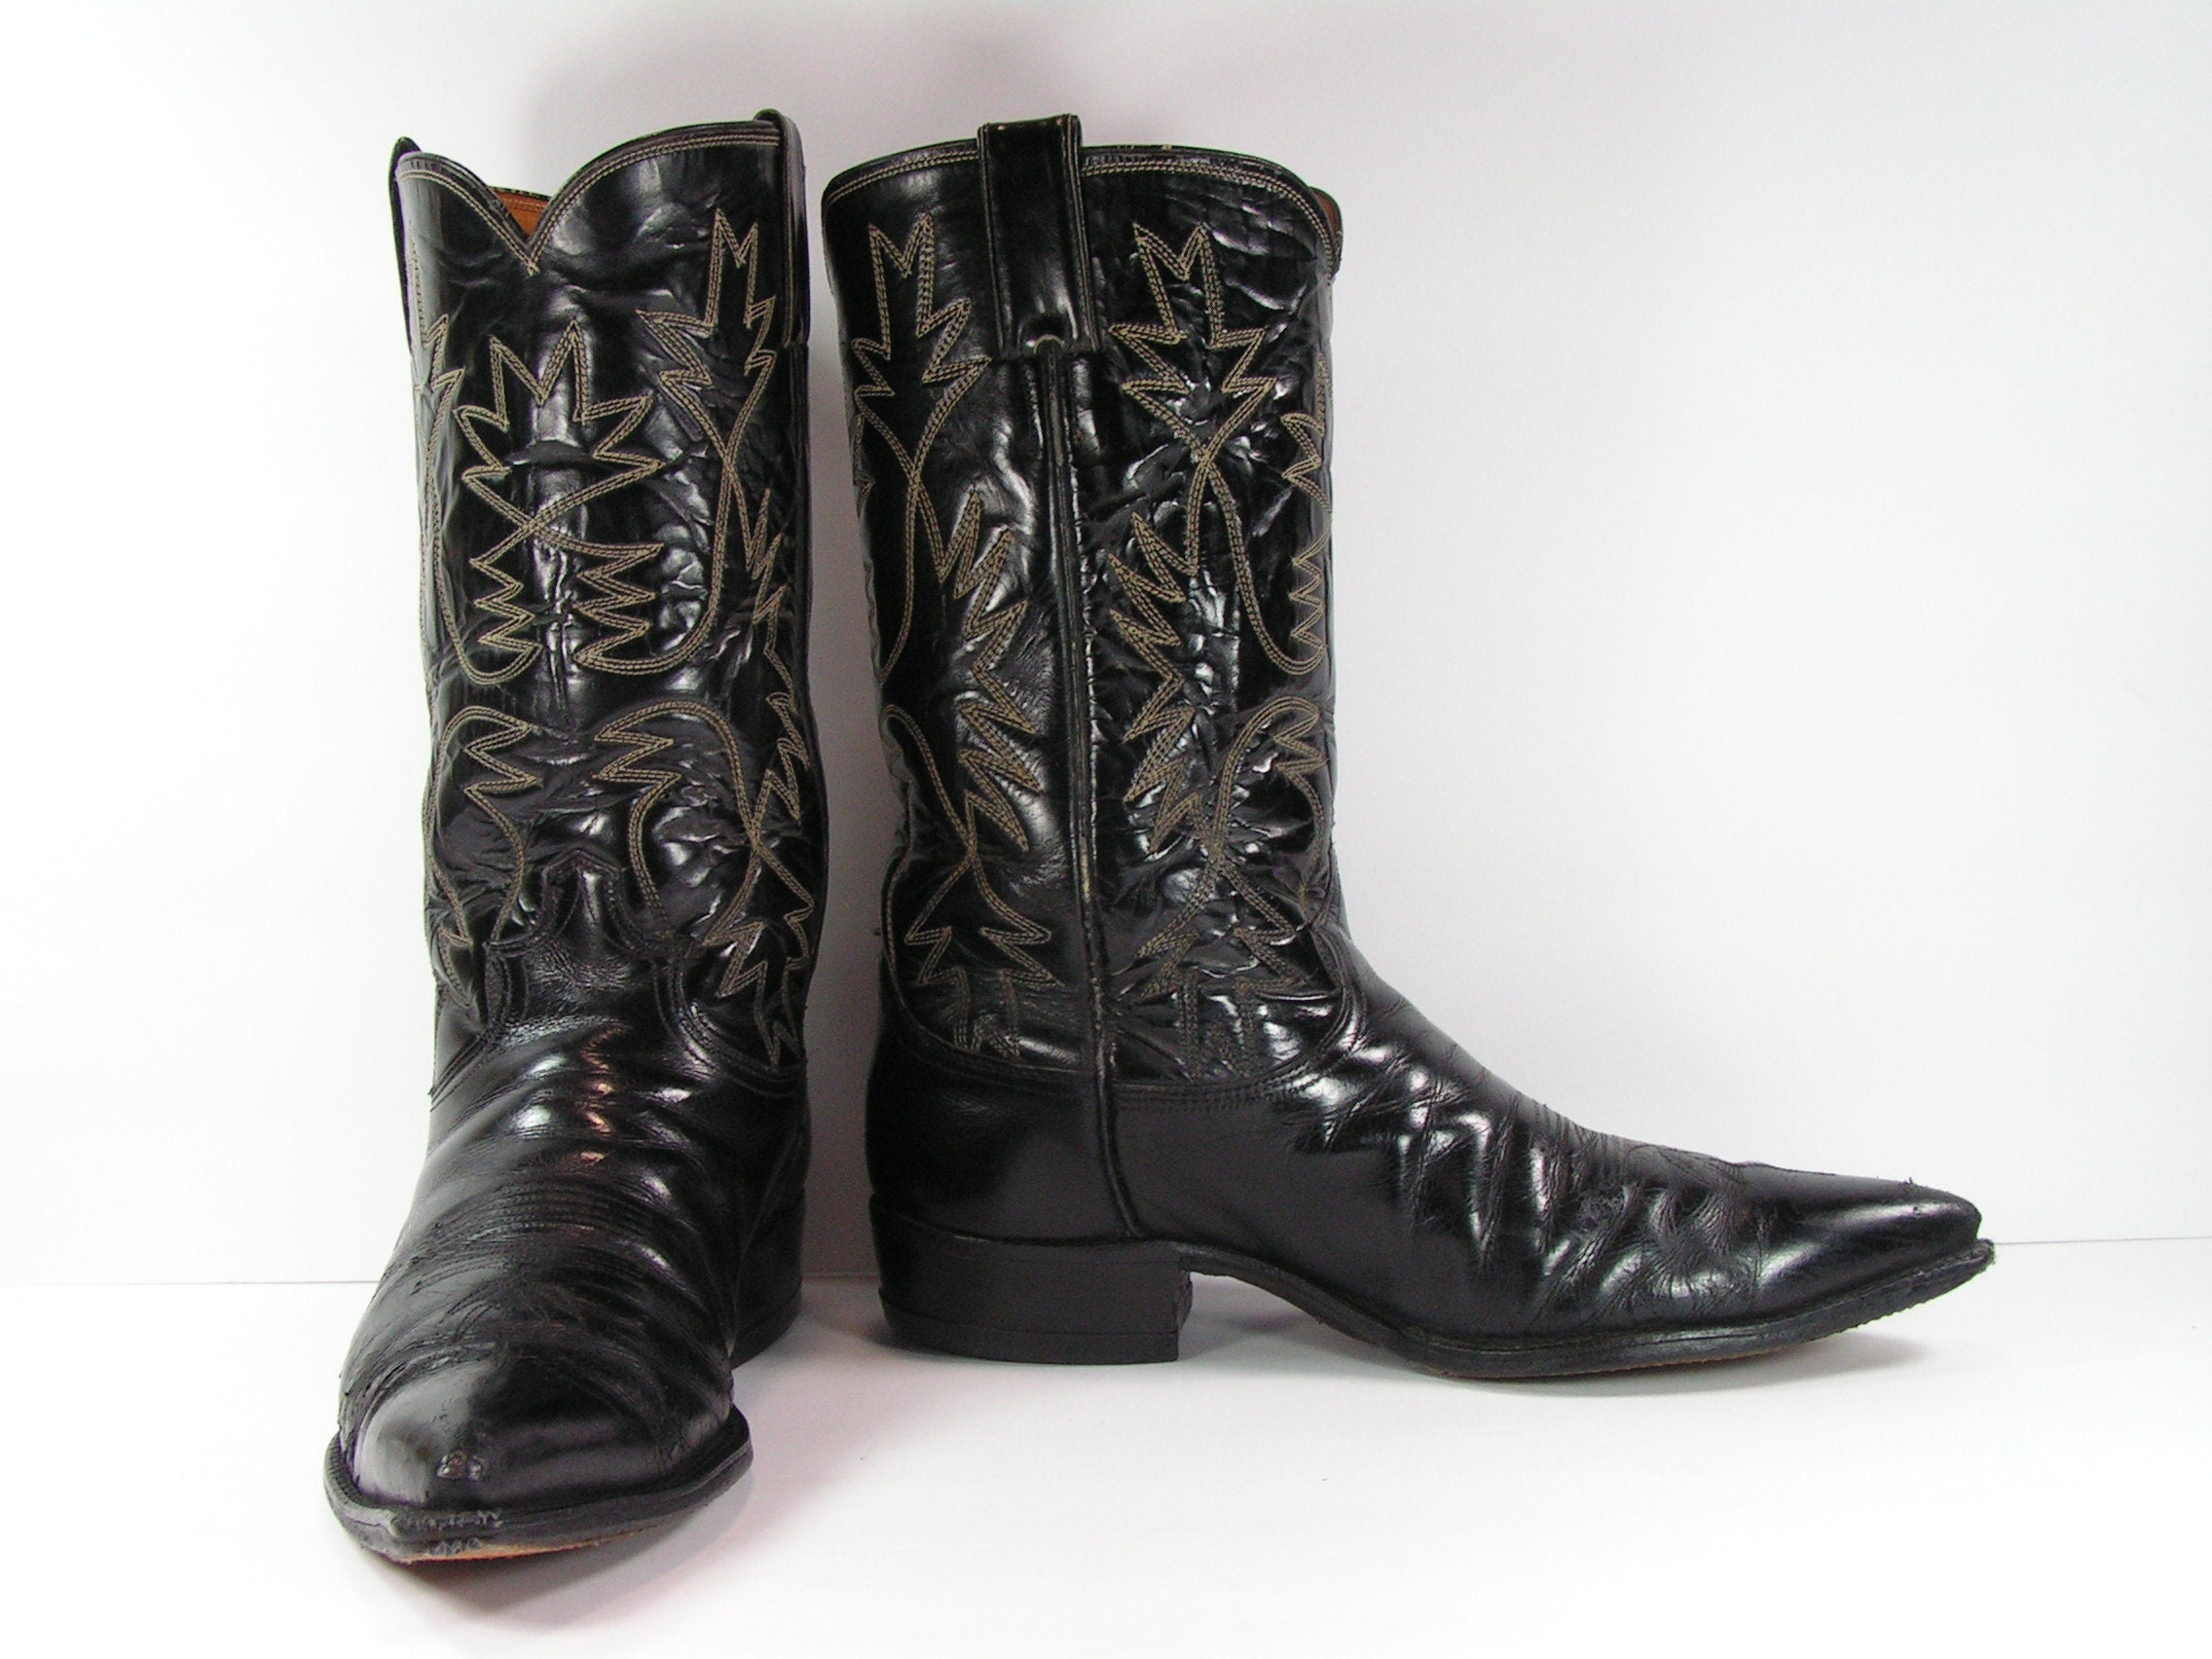 79f00ab8d01 justin cowboy boots men's 10 D black leather western made in usa vintage  cloth label point toe